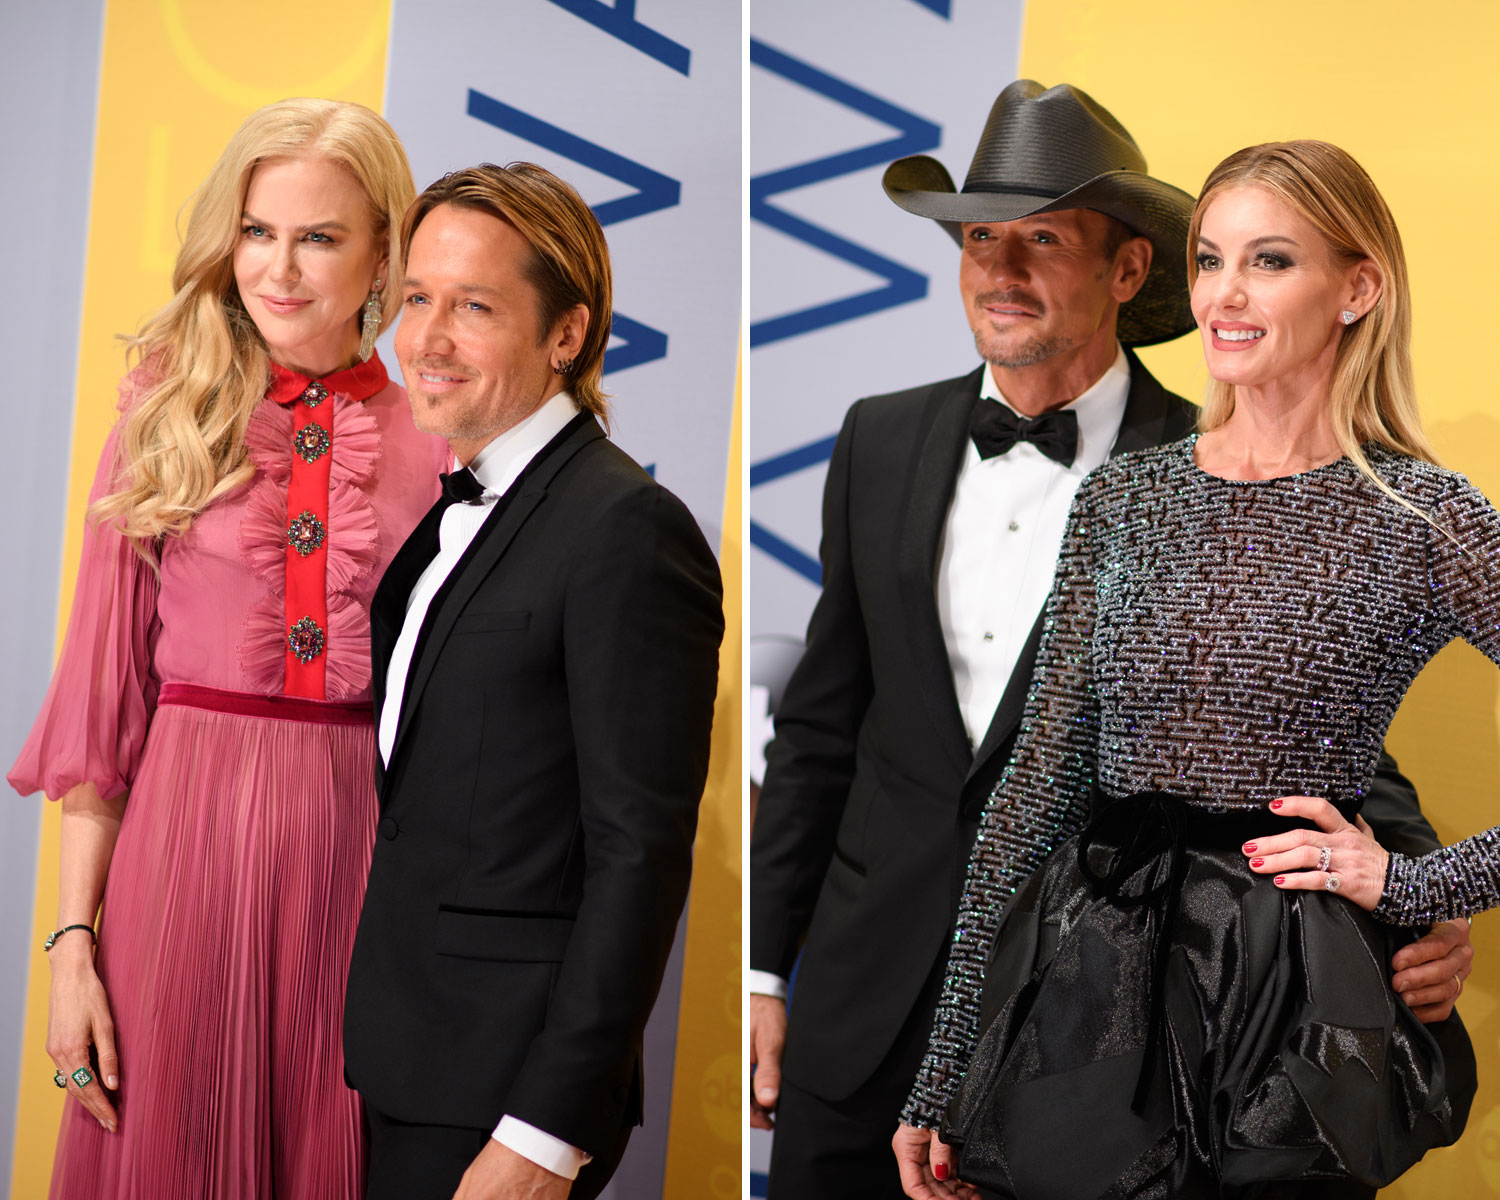 Nicole Kidman cmas faith hill